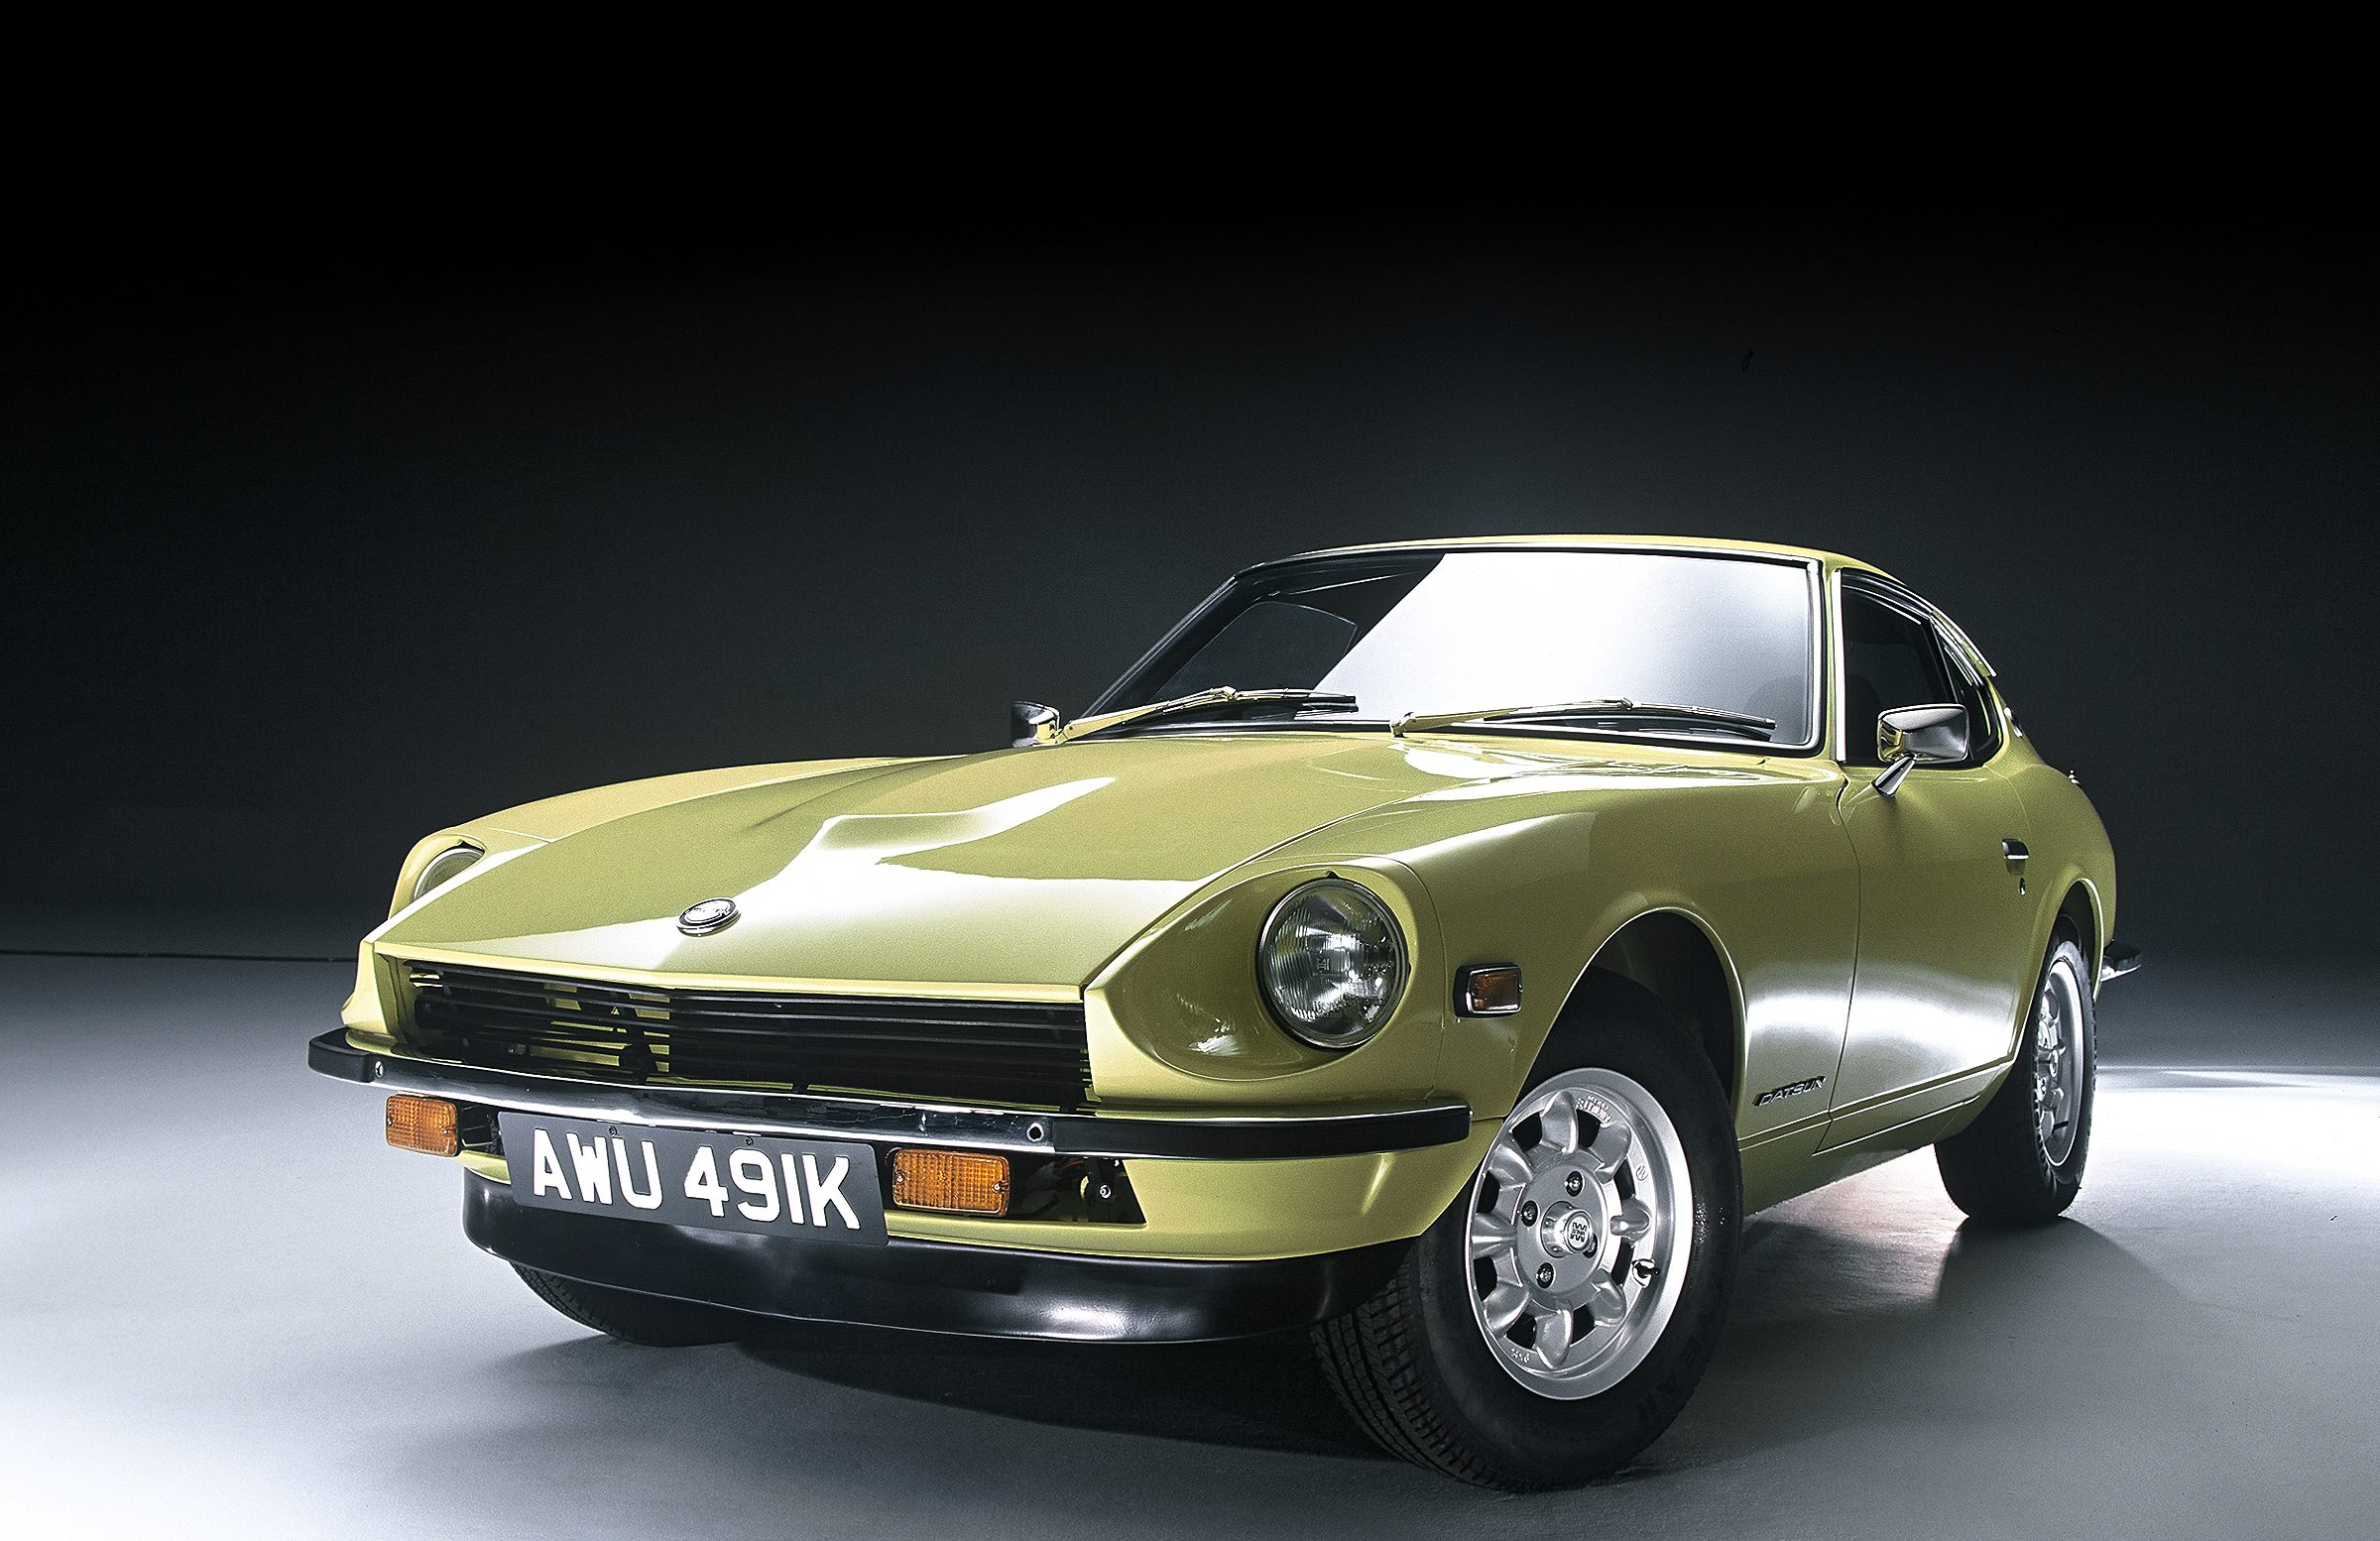 Gold digger: 50 years after Nissan's Z car was born, the original JDM sports car is more desirable than ever